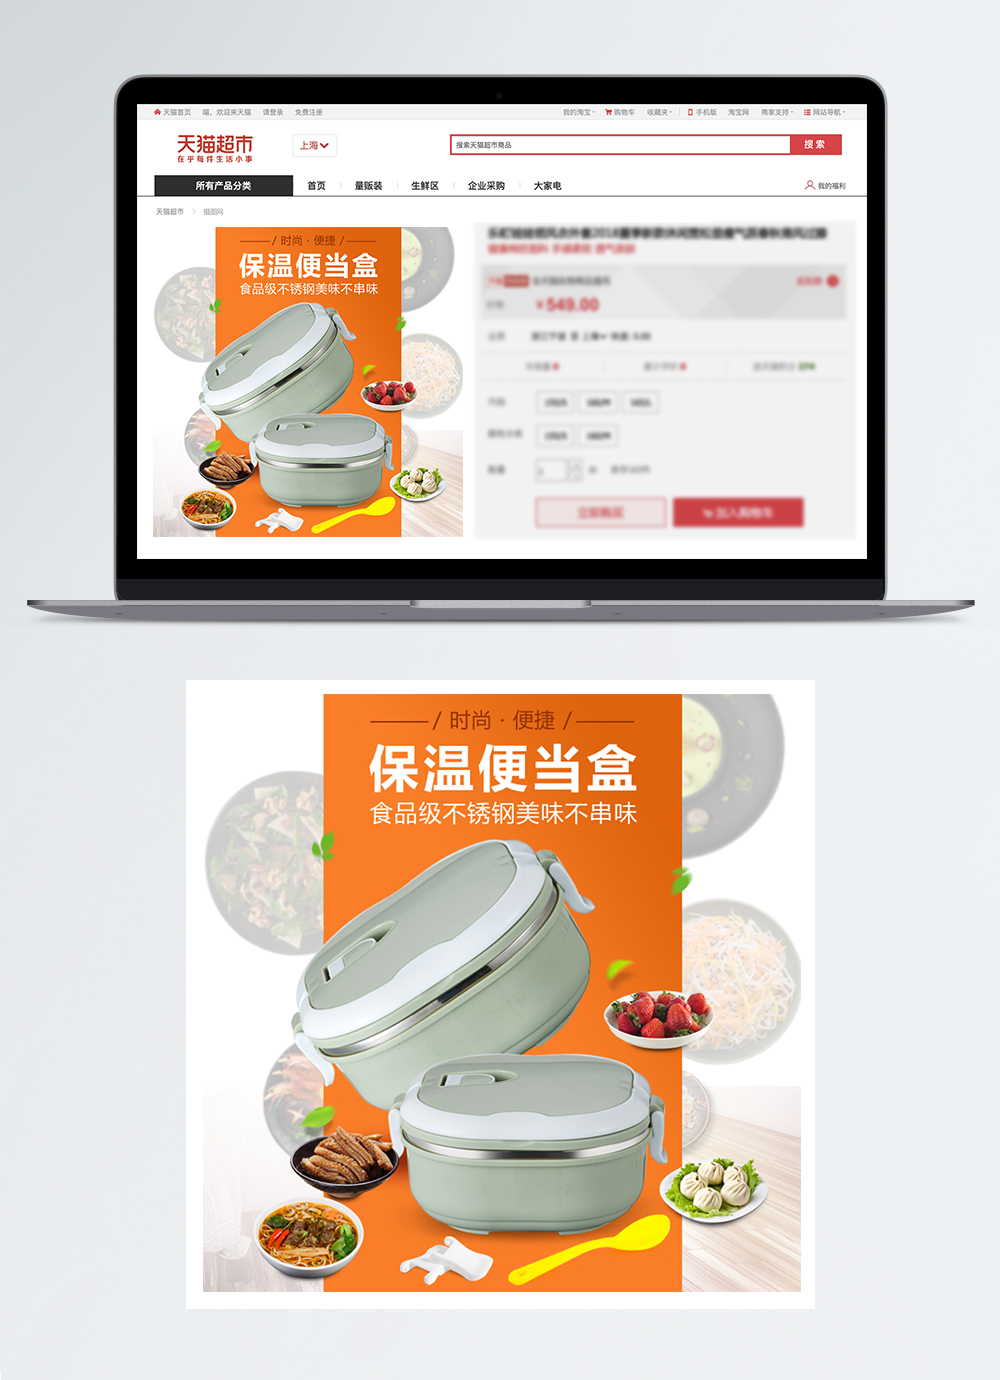 Main map of taobao insulation pot box template image_picture ... Map Insulation on